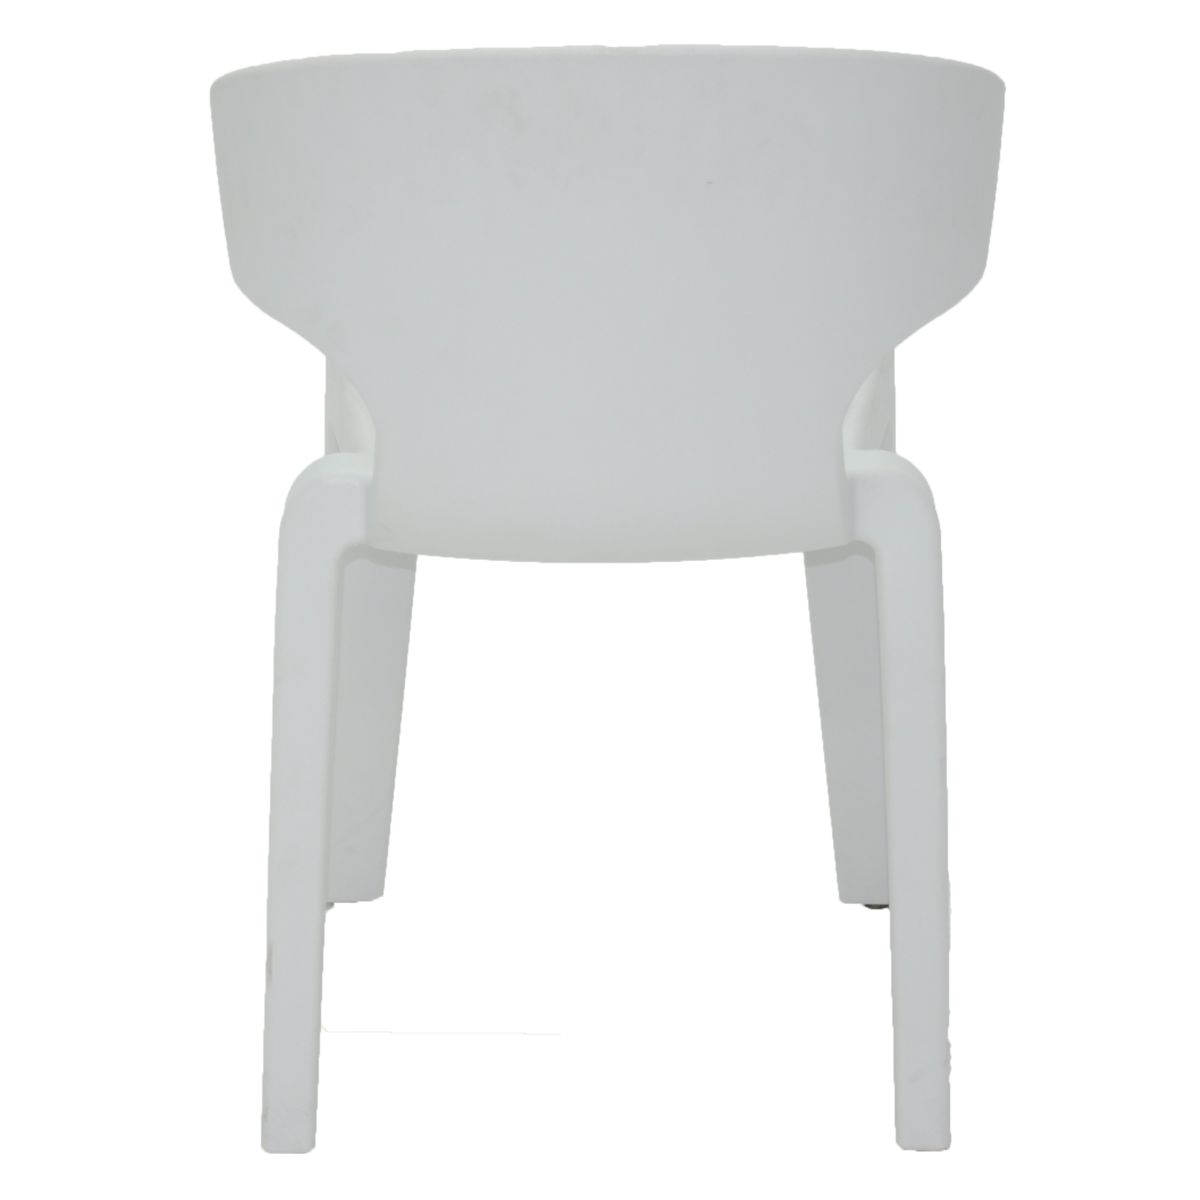 sc 1 st  Tramontina & Tramontina - Marilyn Chair